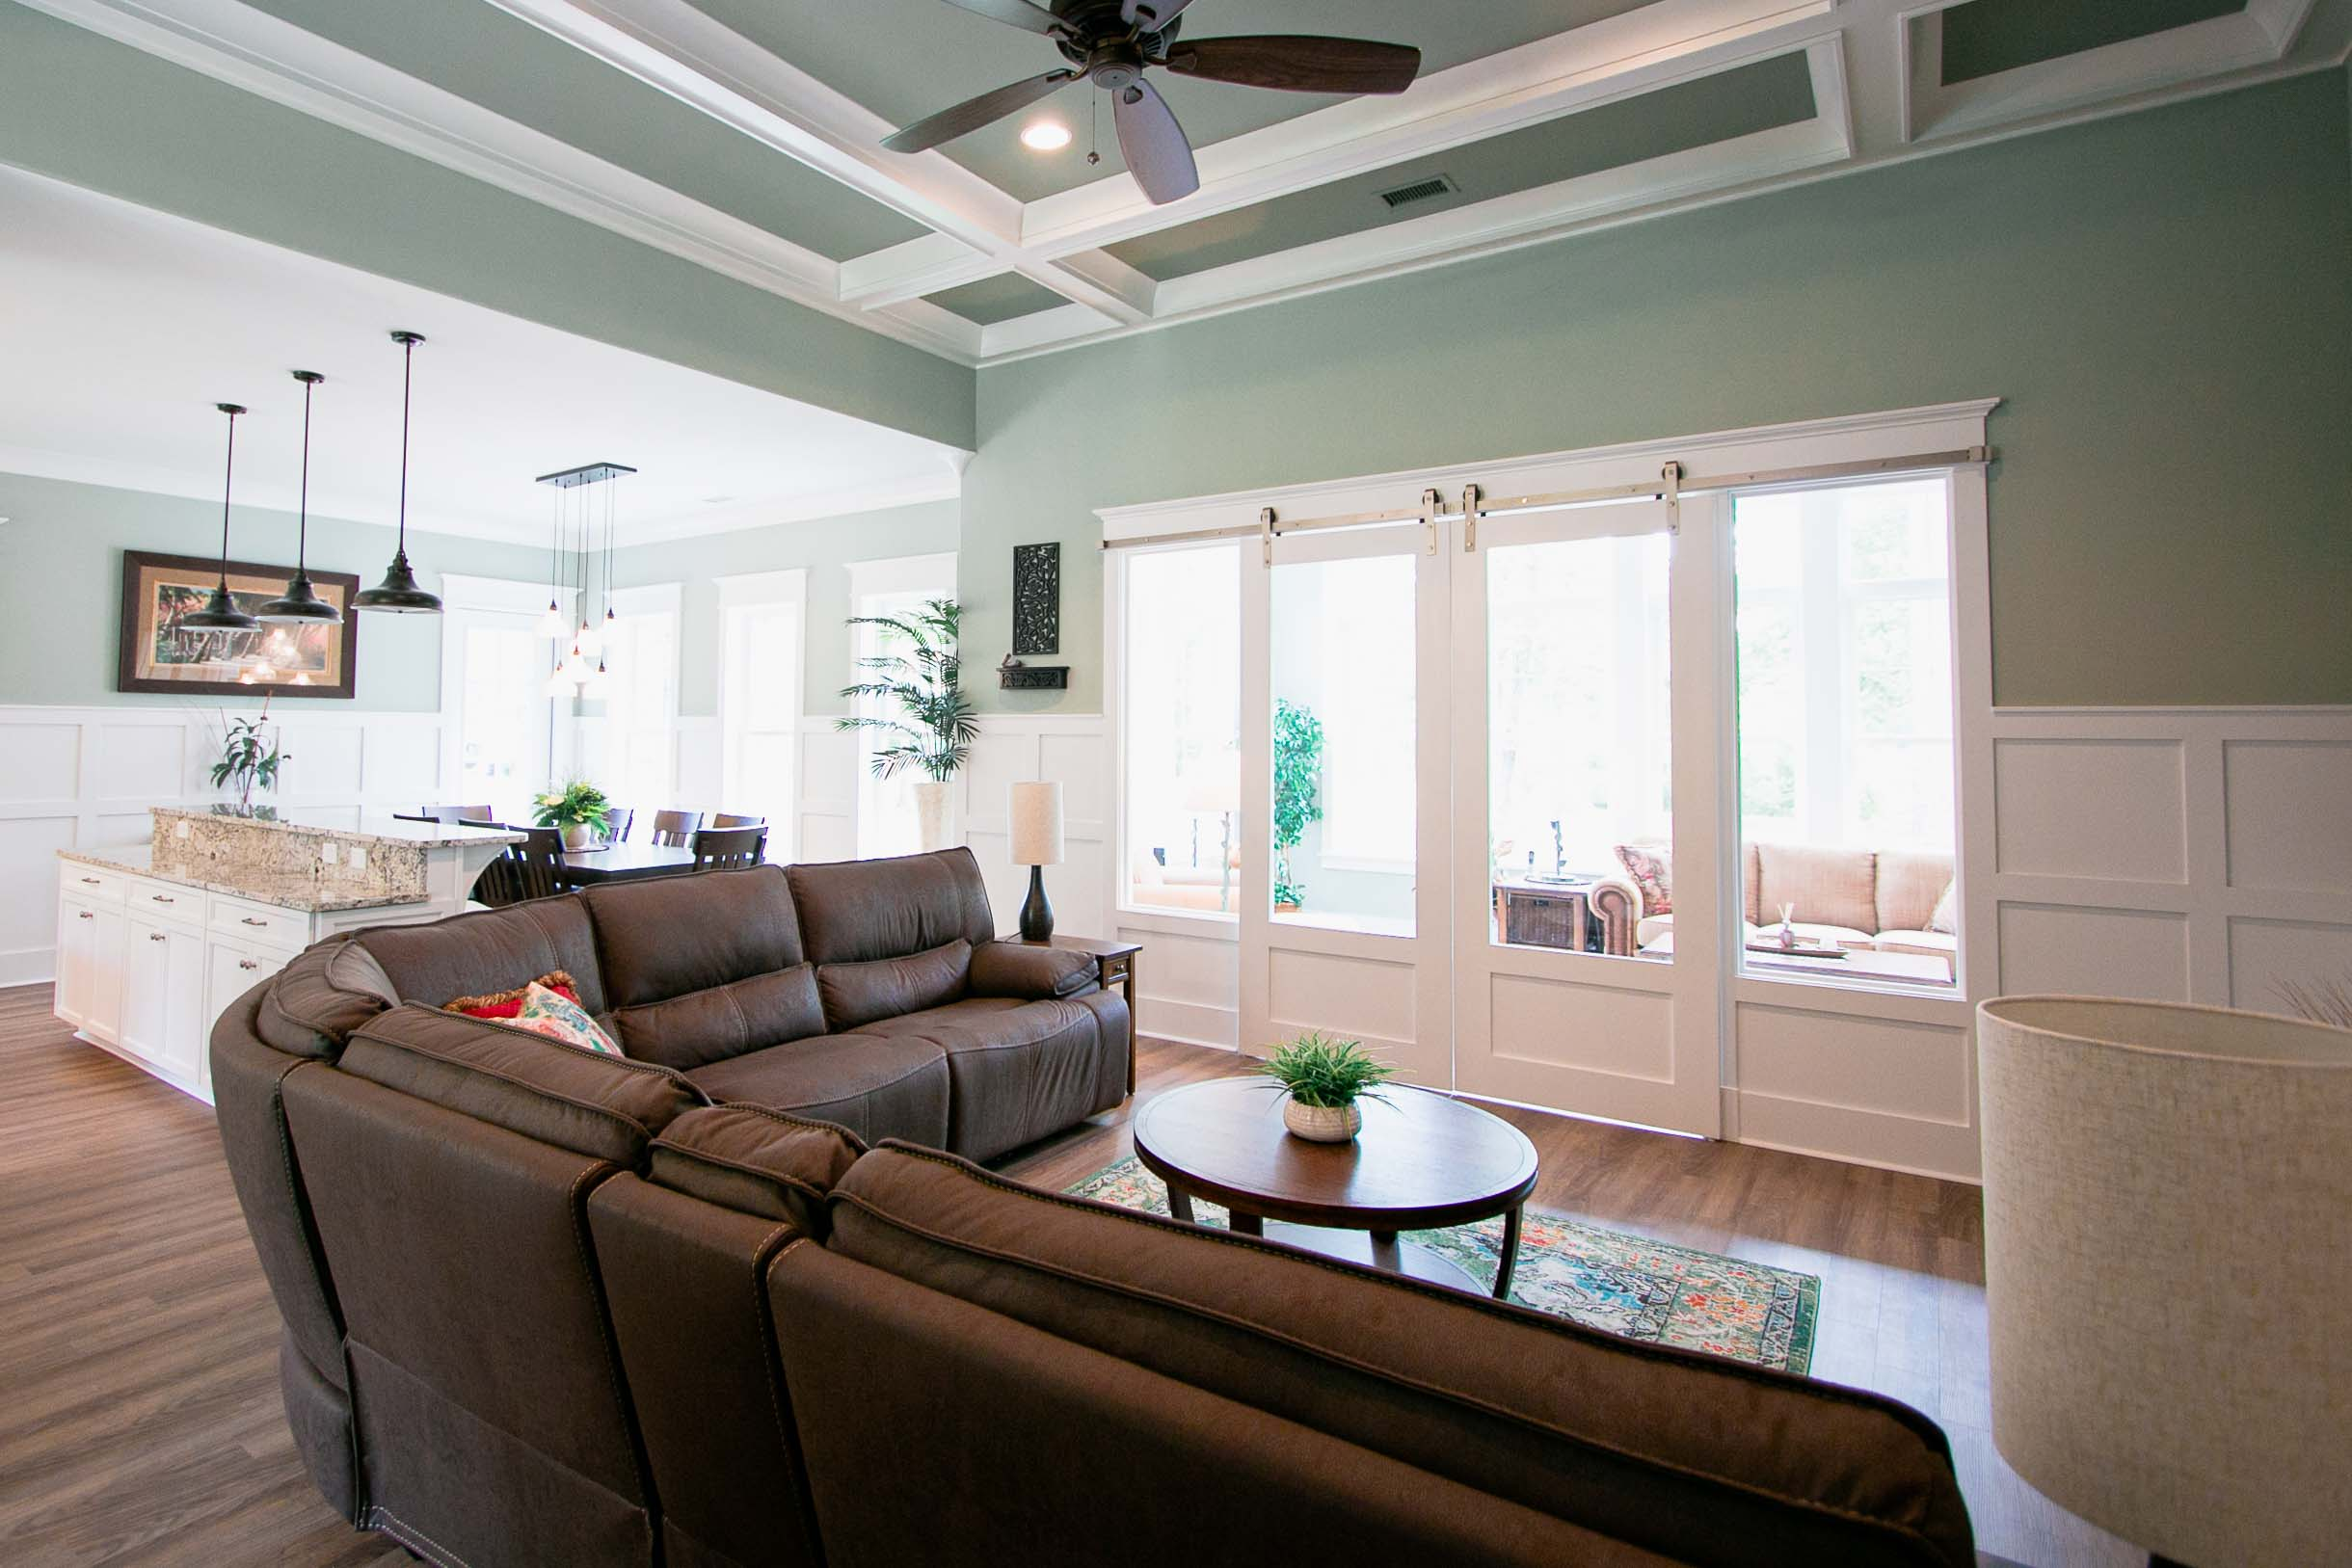 Baywater Manor by QRI Construction